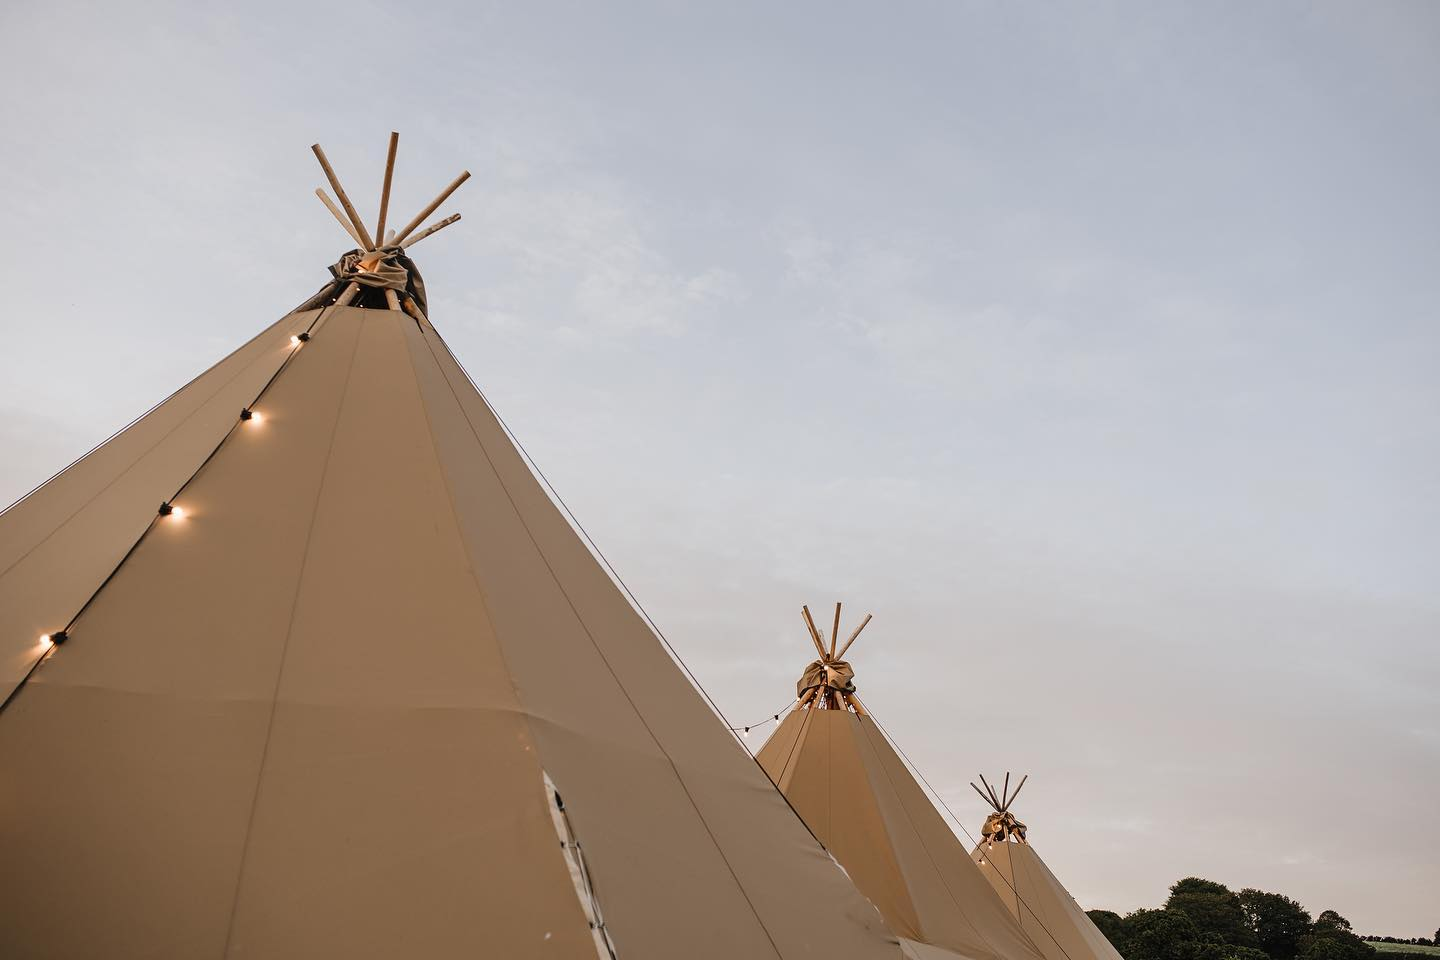 How to plan an Epic Tipi Party - Feb 21